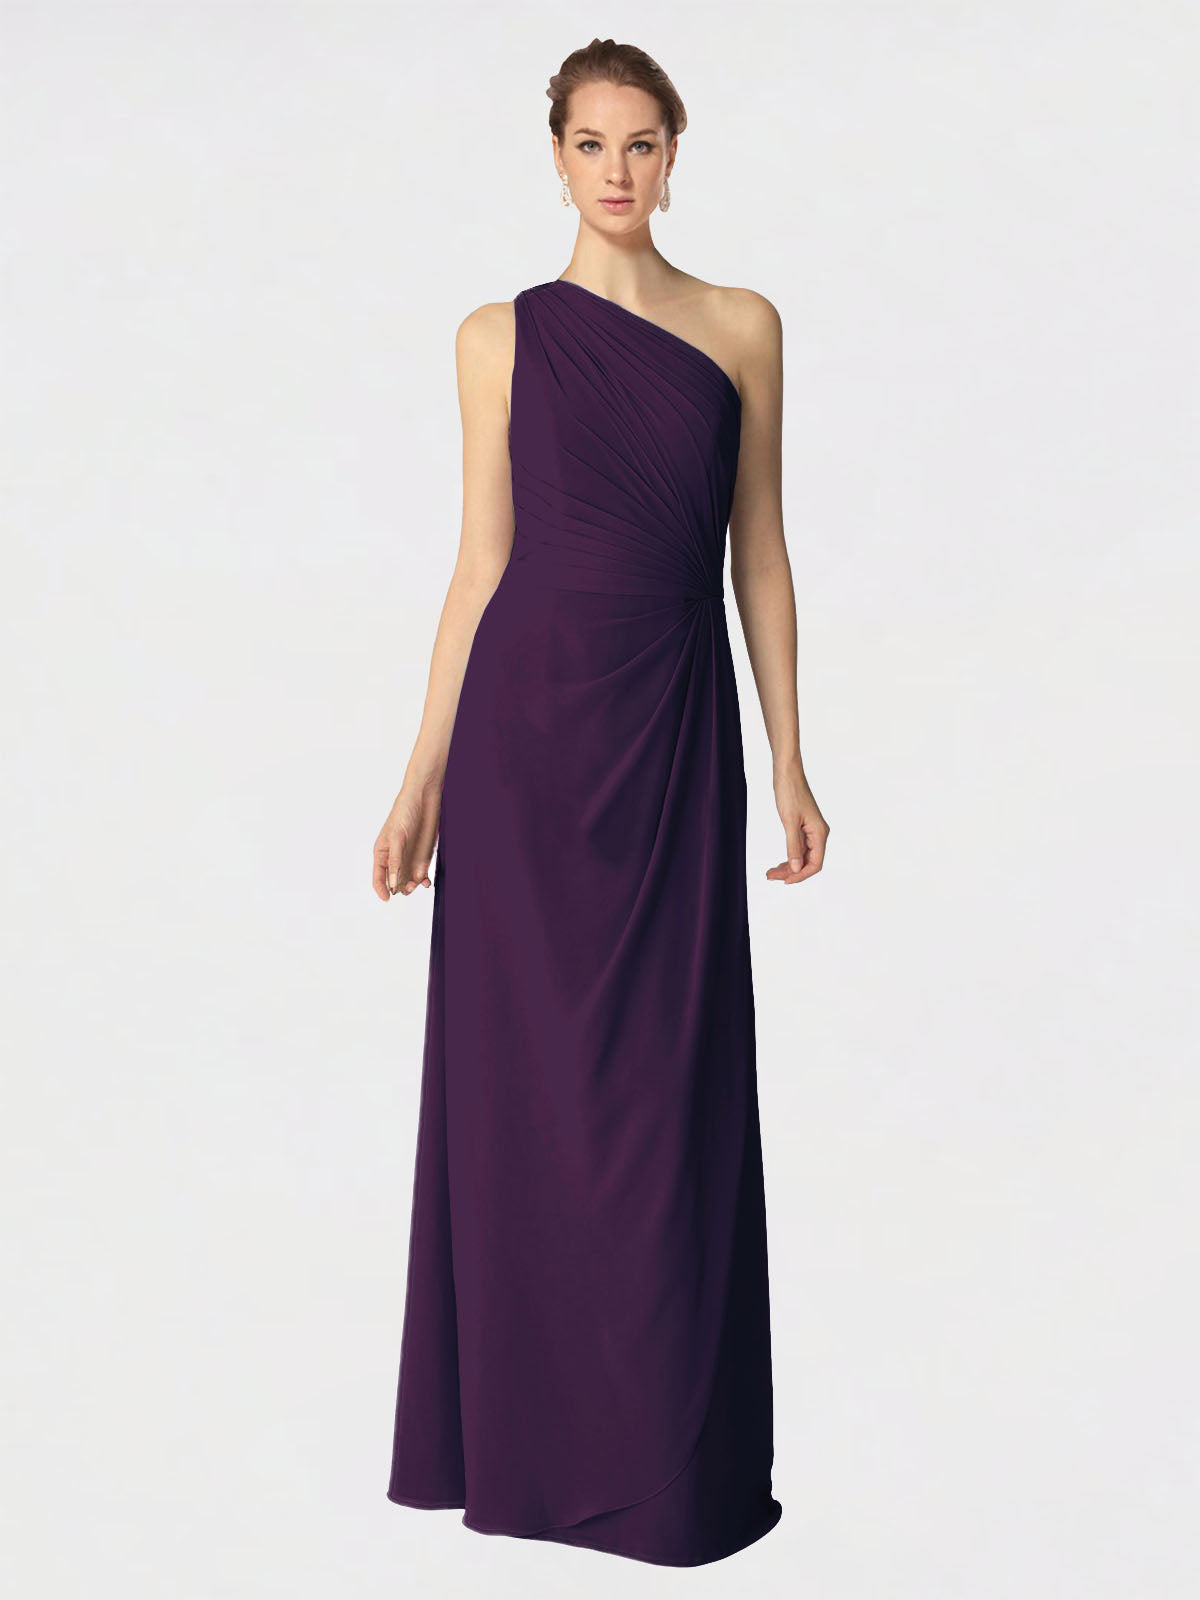 Long A-Line One Shoulder Sleeveless Grape Chiffon Bridesmaid Dress Aurora